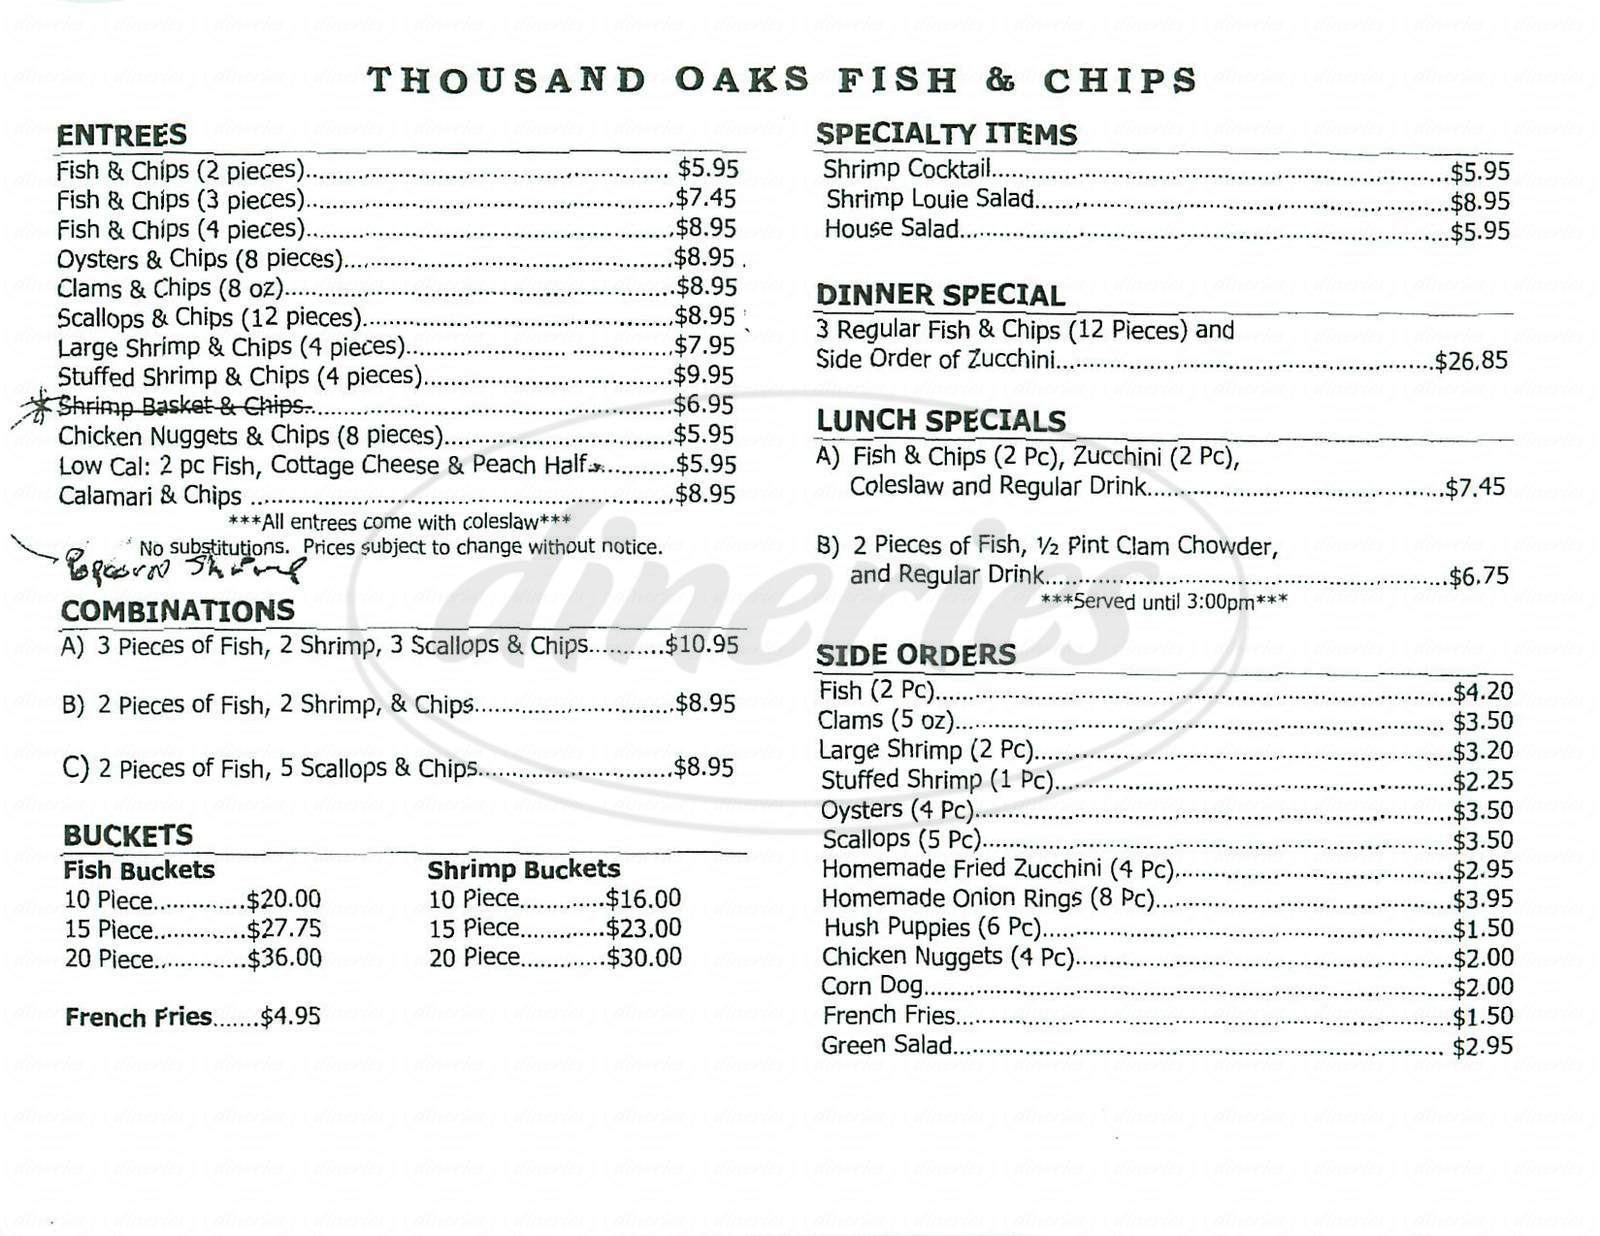 menu for Thousand Oaks Fish & Chips